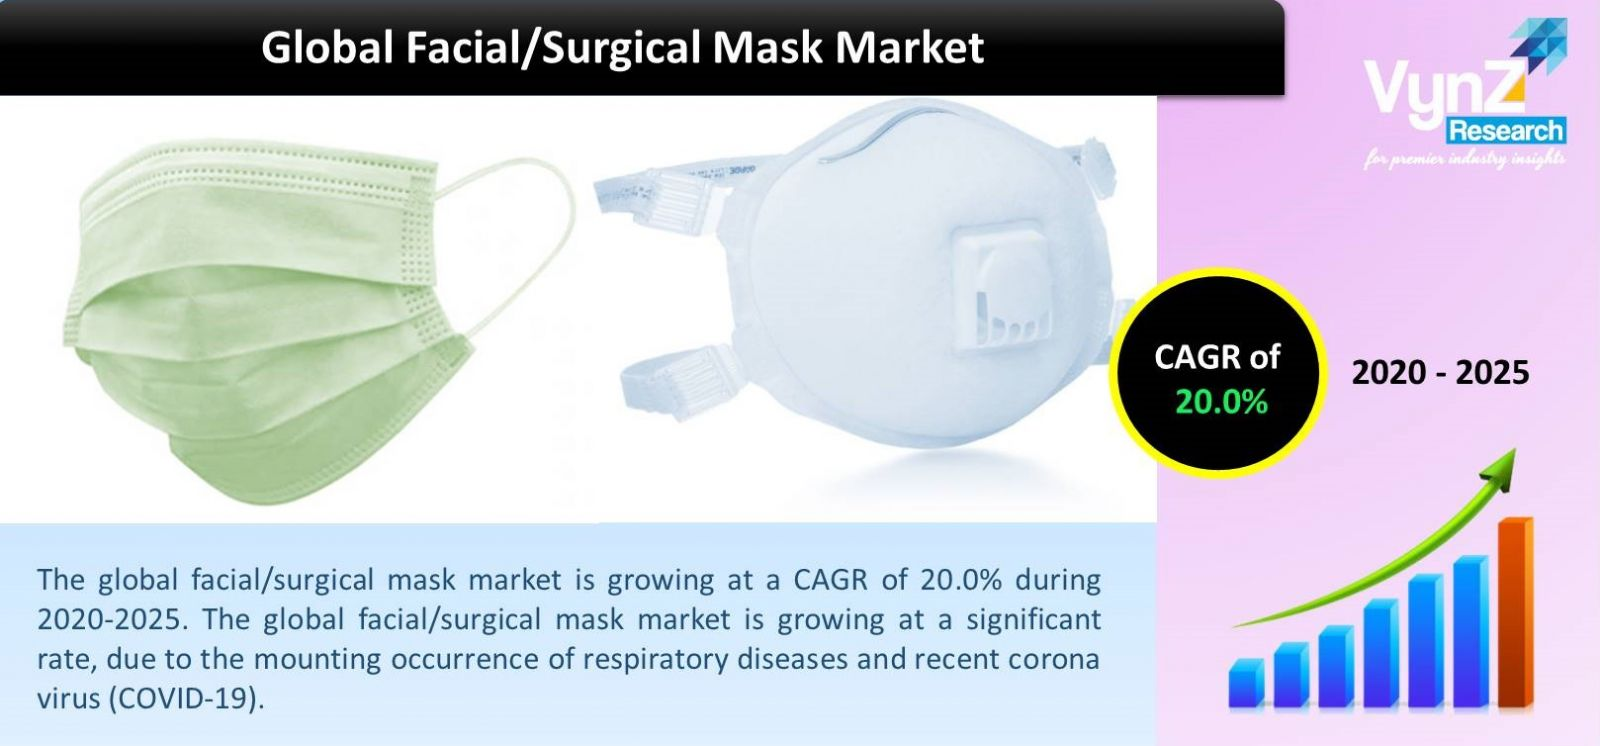 Facial/Surgical Mask Market Highlights